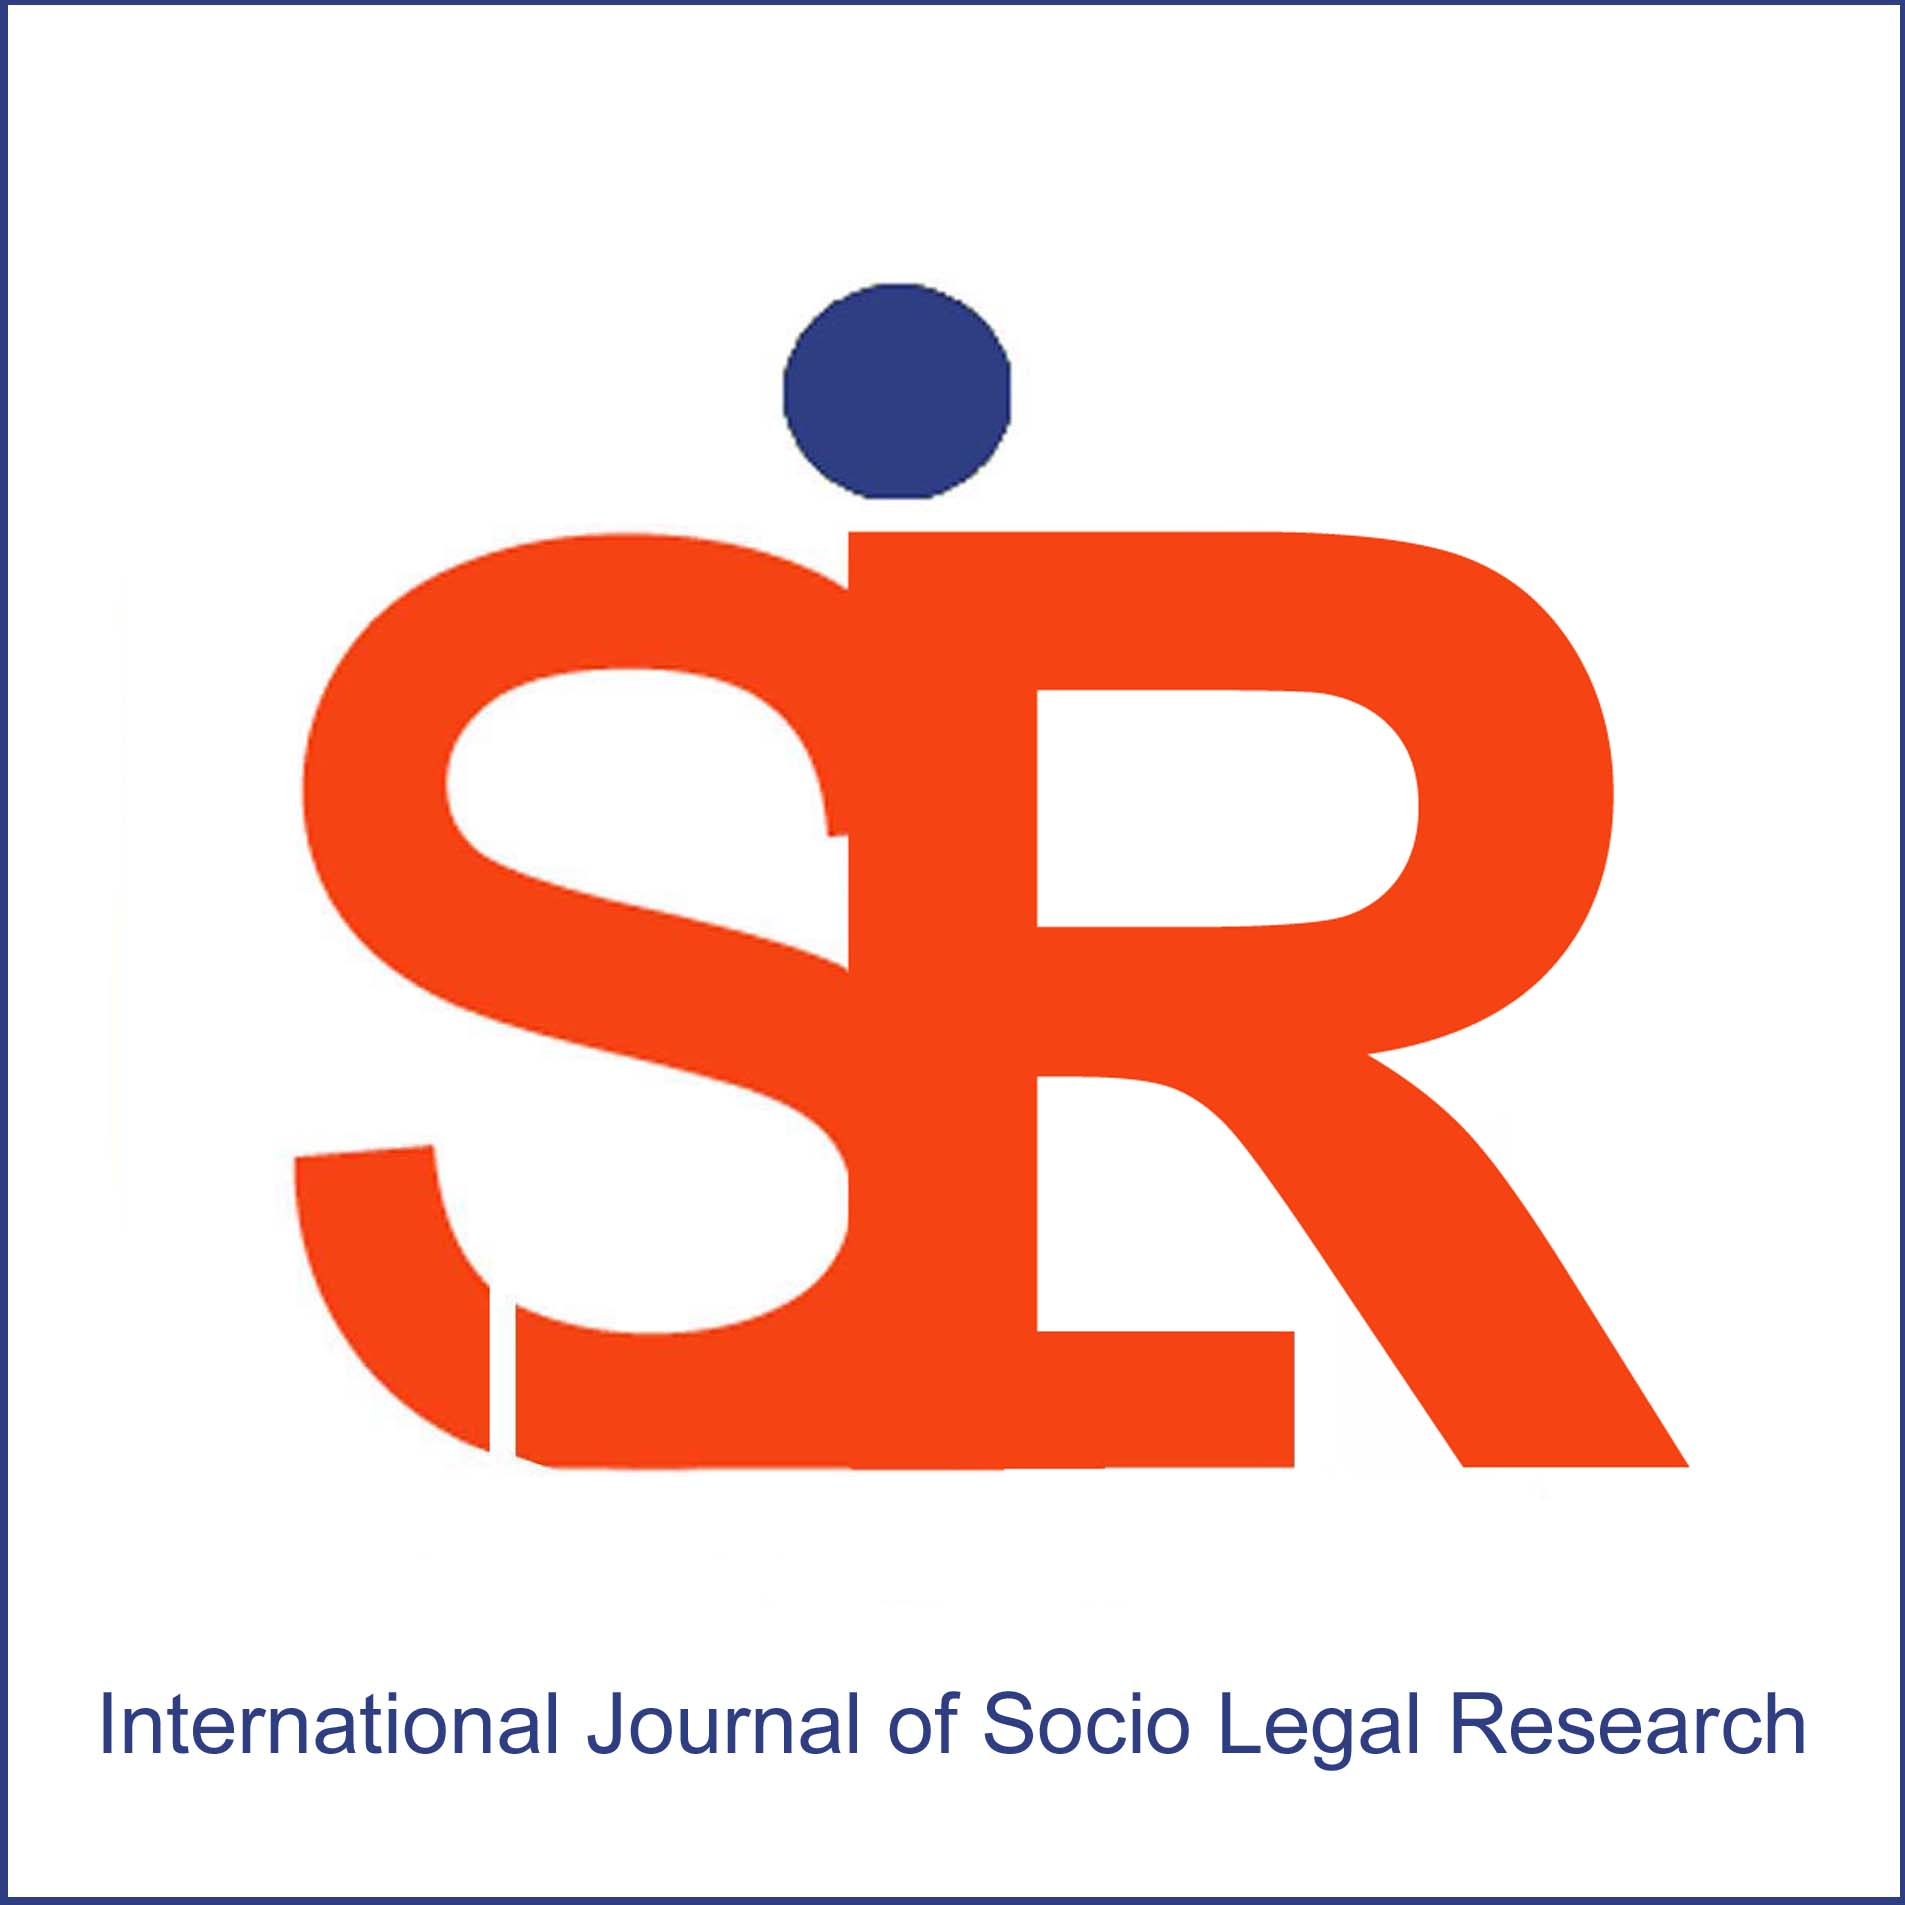 Call for Papers: International Journal of Socio-Legal Research Volume 3, Issue 2 [ISSN- 2393-8250]: Submit by March 2